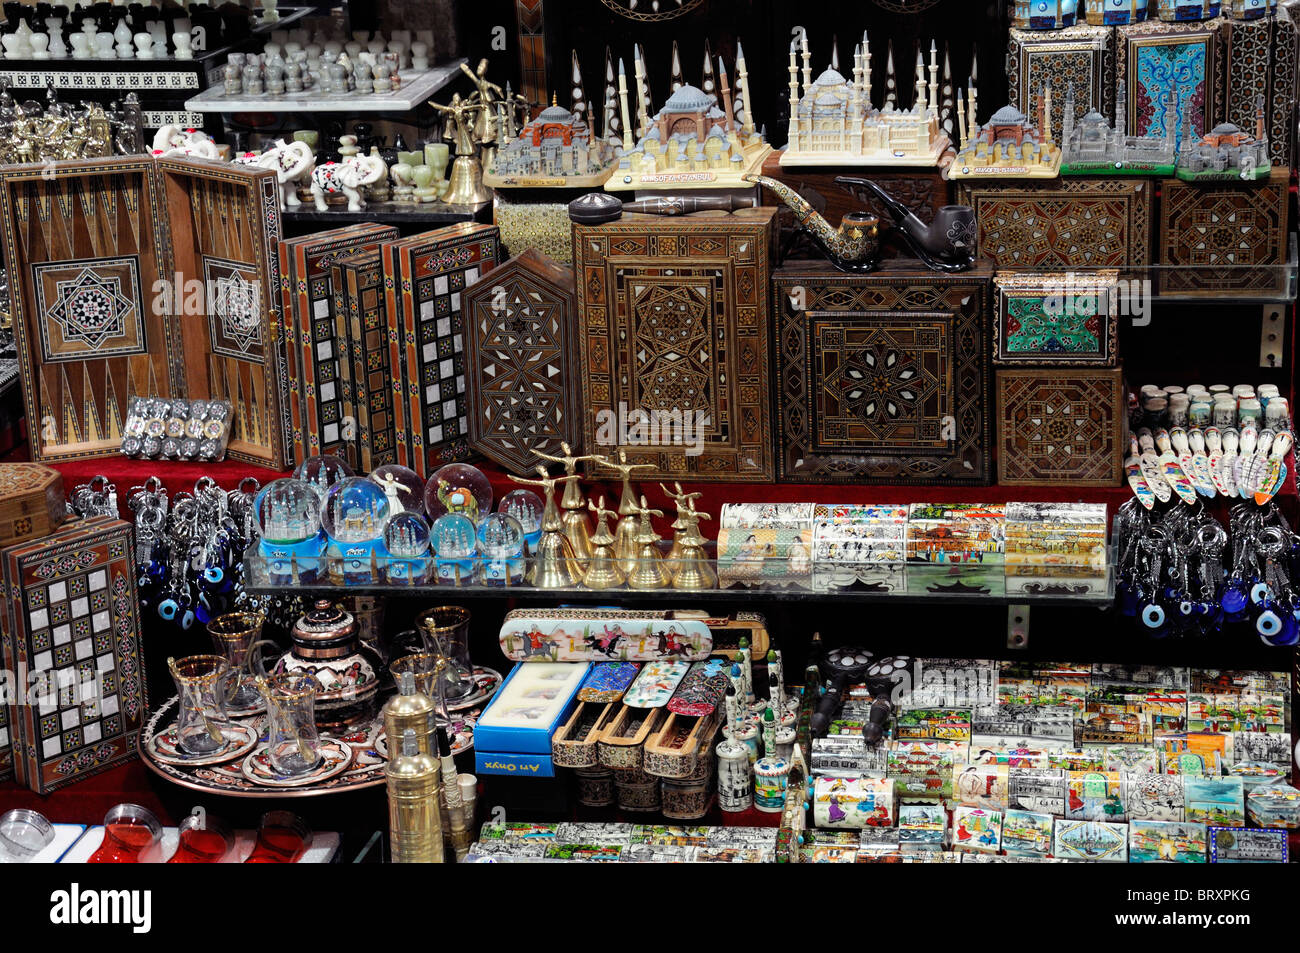 Kapali Carsi or Grand Bazaar of Istanbul, ceramics gifts souvenirs on sale Turkey backgammon board games